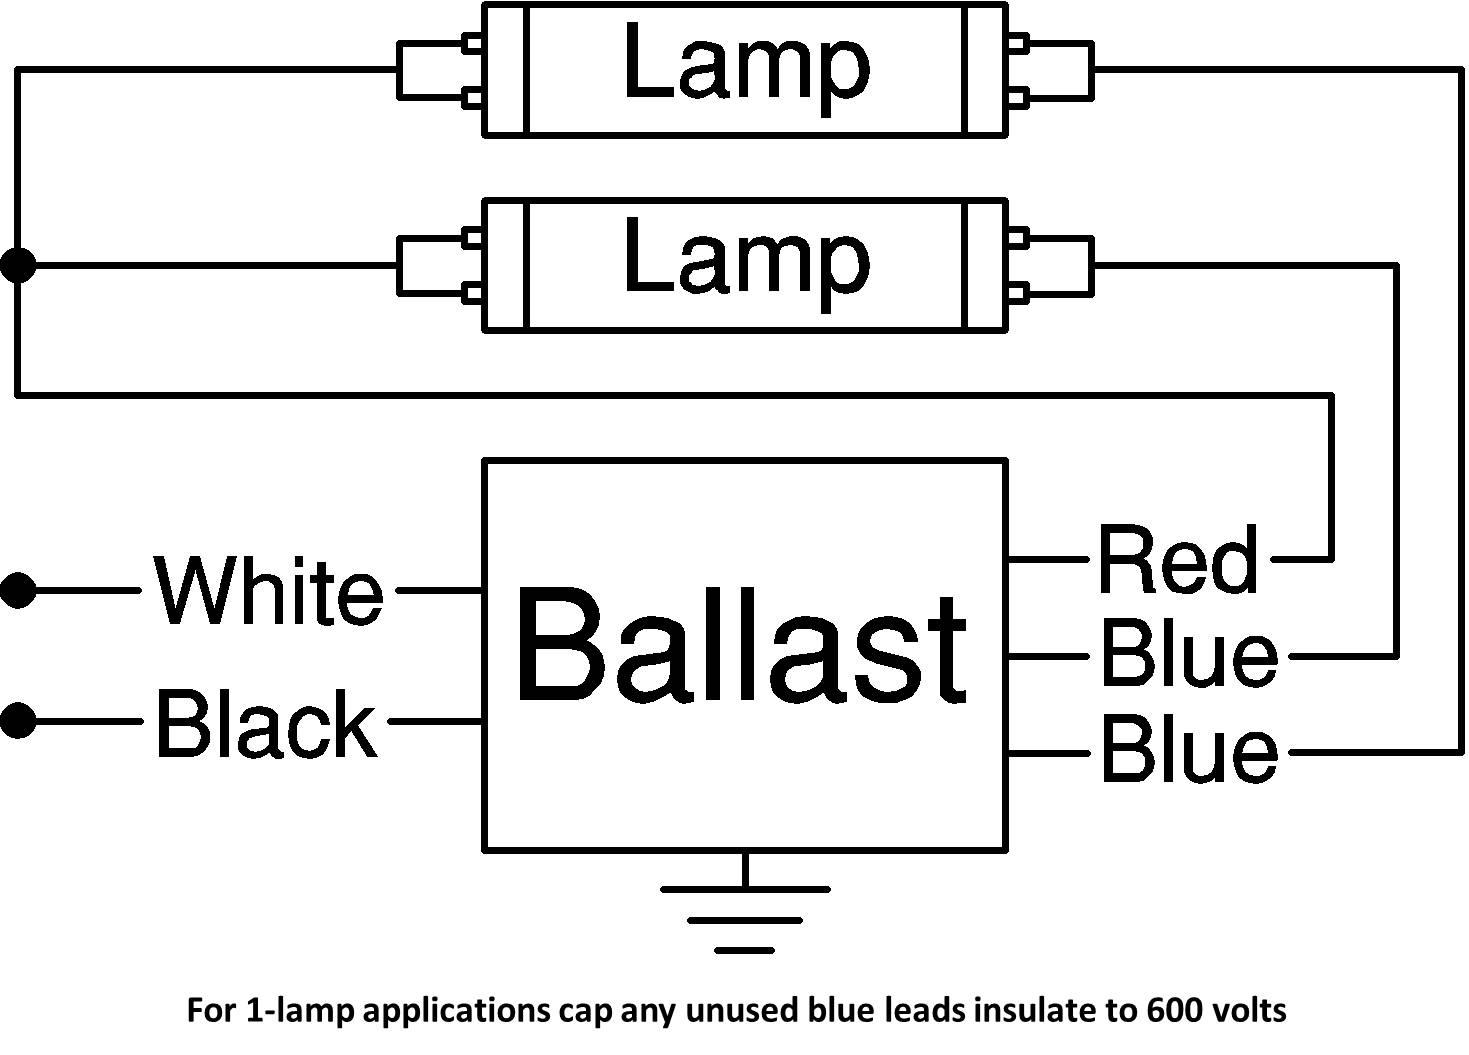 ballast wiring diagram t8 images t8diagram light ballast wiring ballast factor hpf fluorescent for 12 f32t8 linear lamps